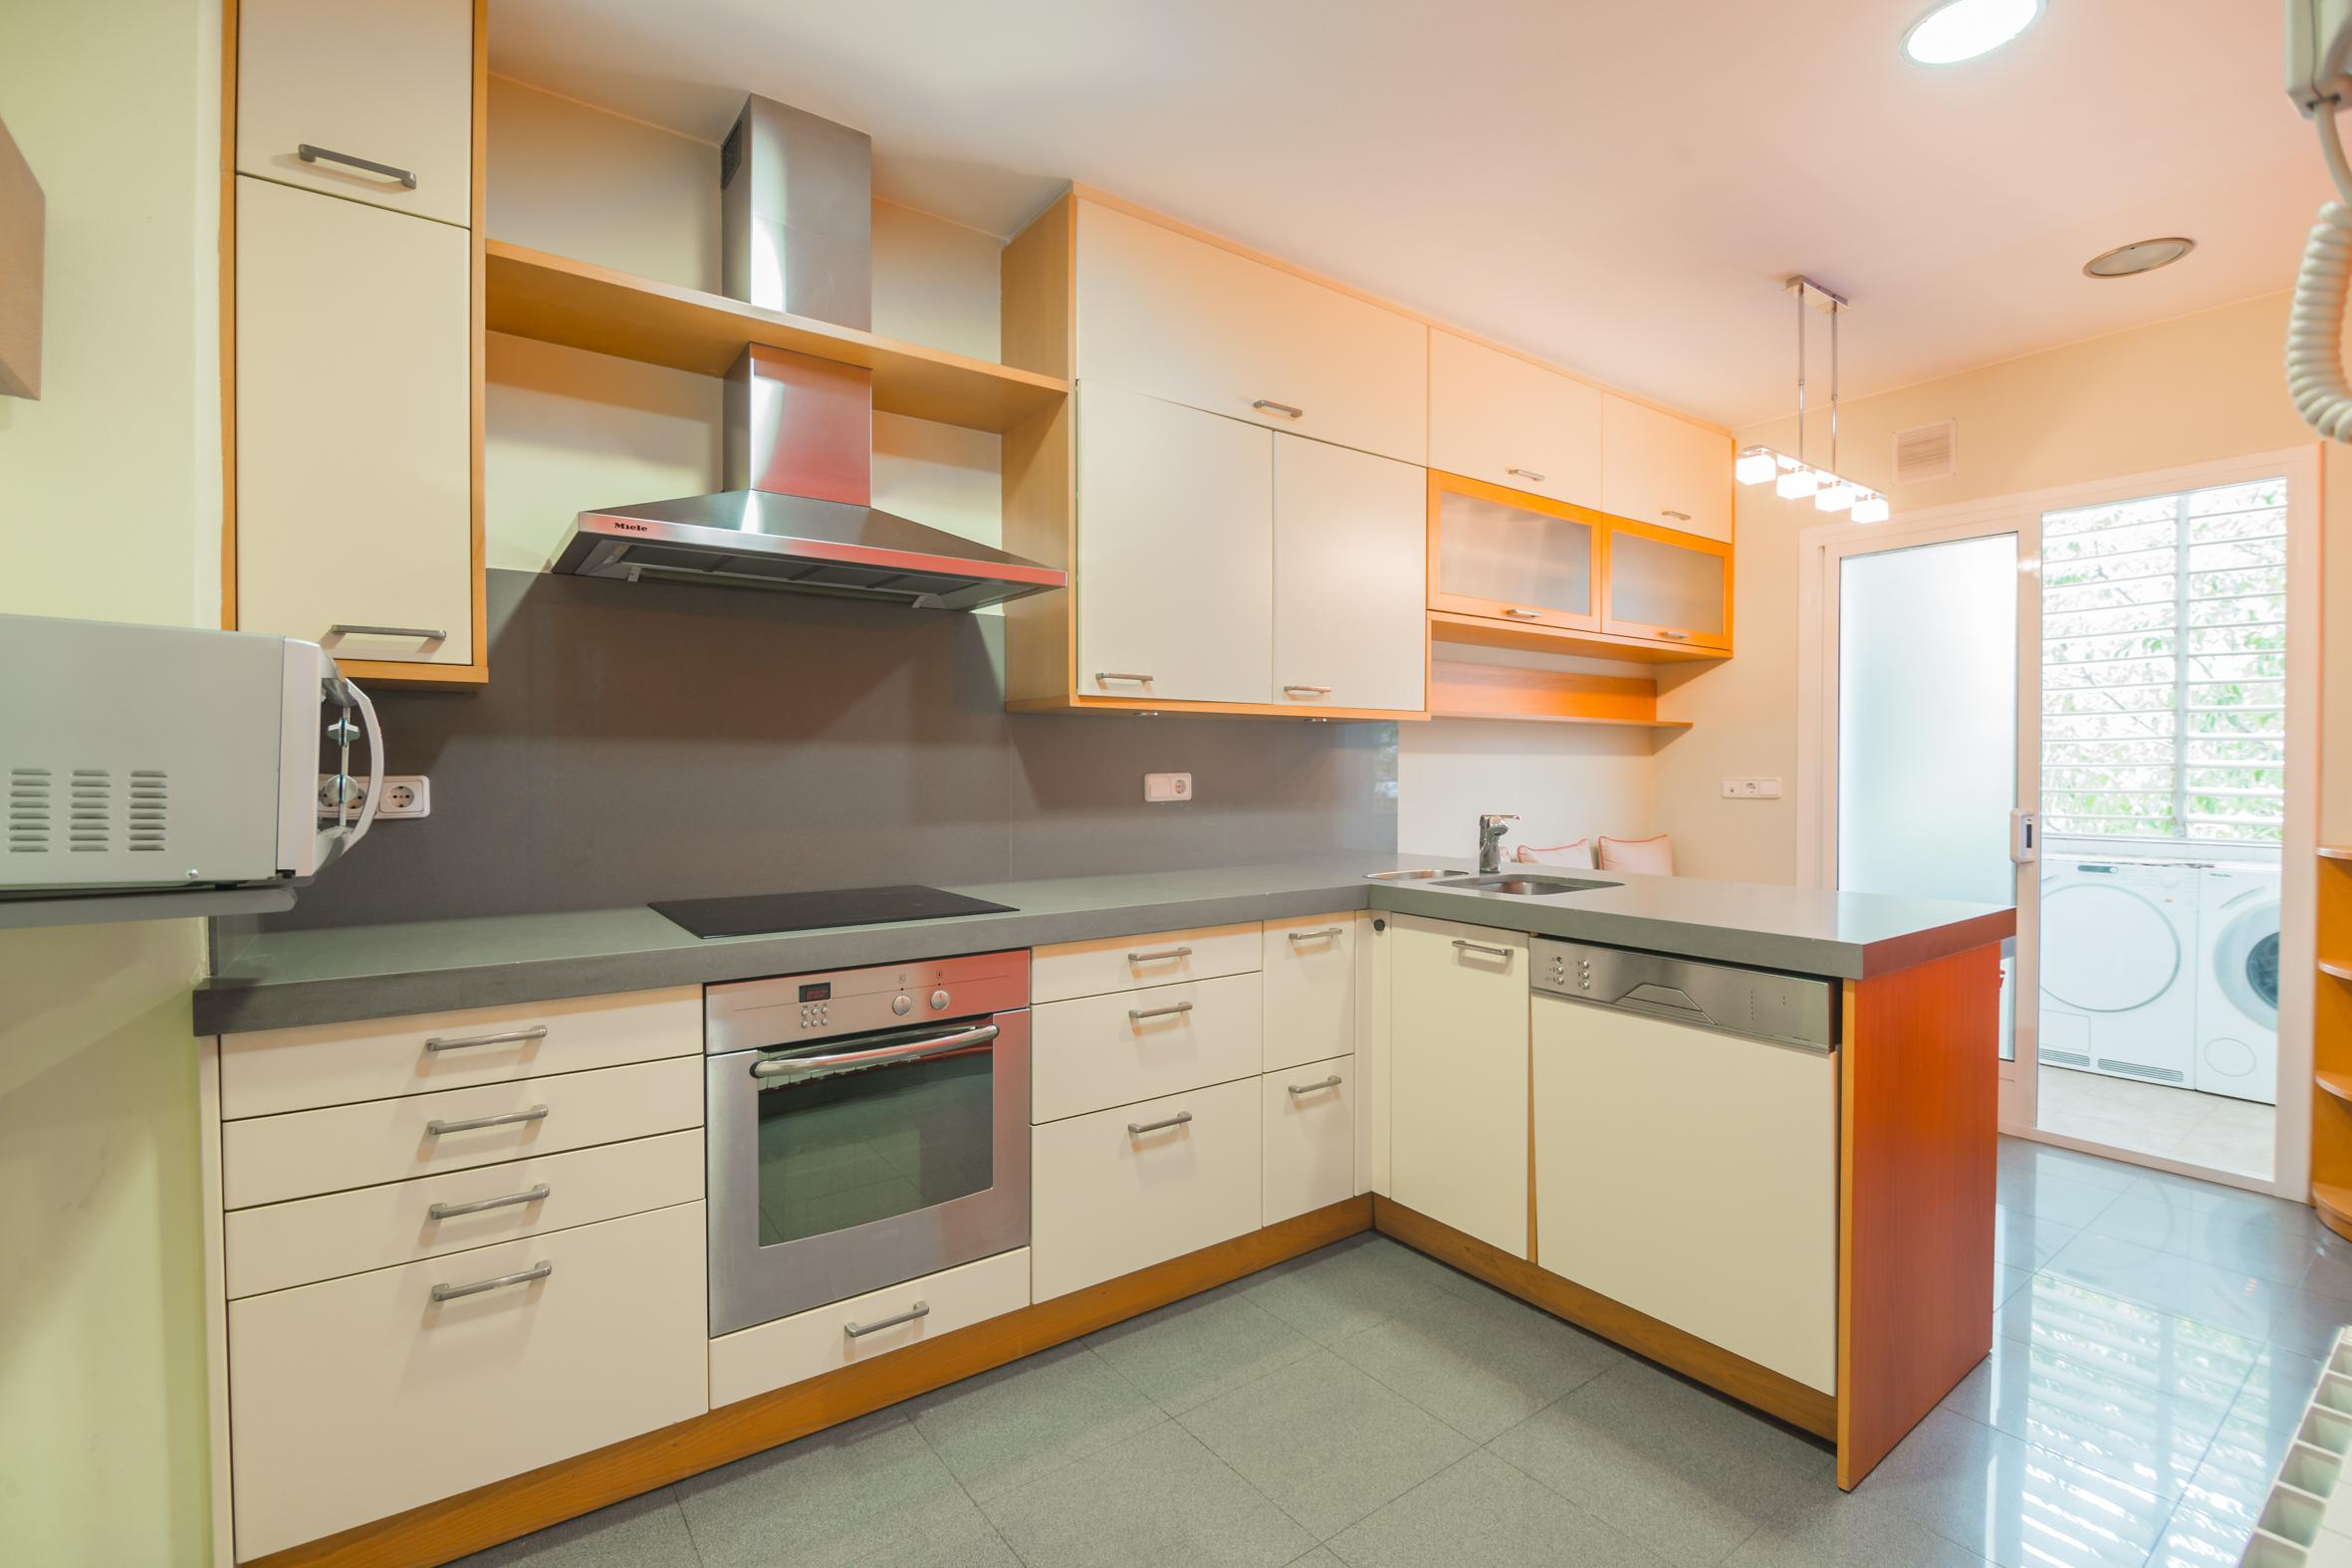 246902 Flat for sale in Les Corts, Pedralbes 26